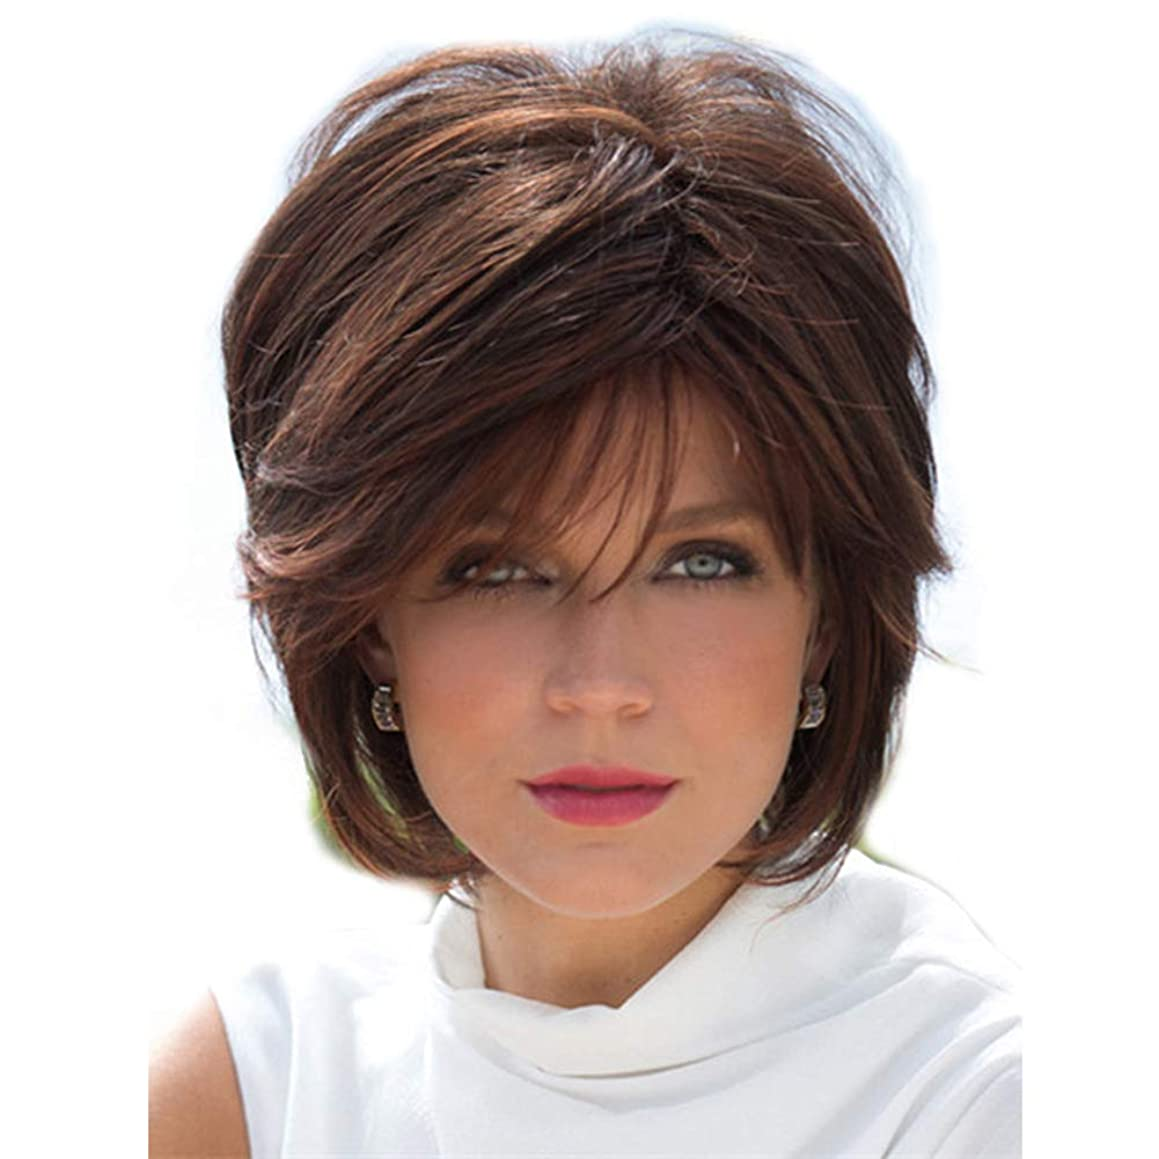 Wig Brown Short Curly Hair for Women Cosplay Natural Looking Heat Resistant Fiber with Free Cap 10.6